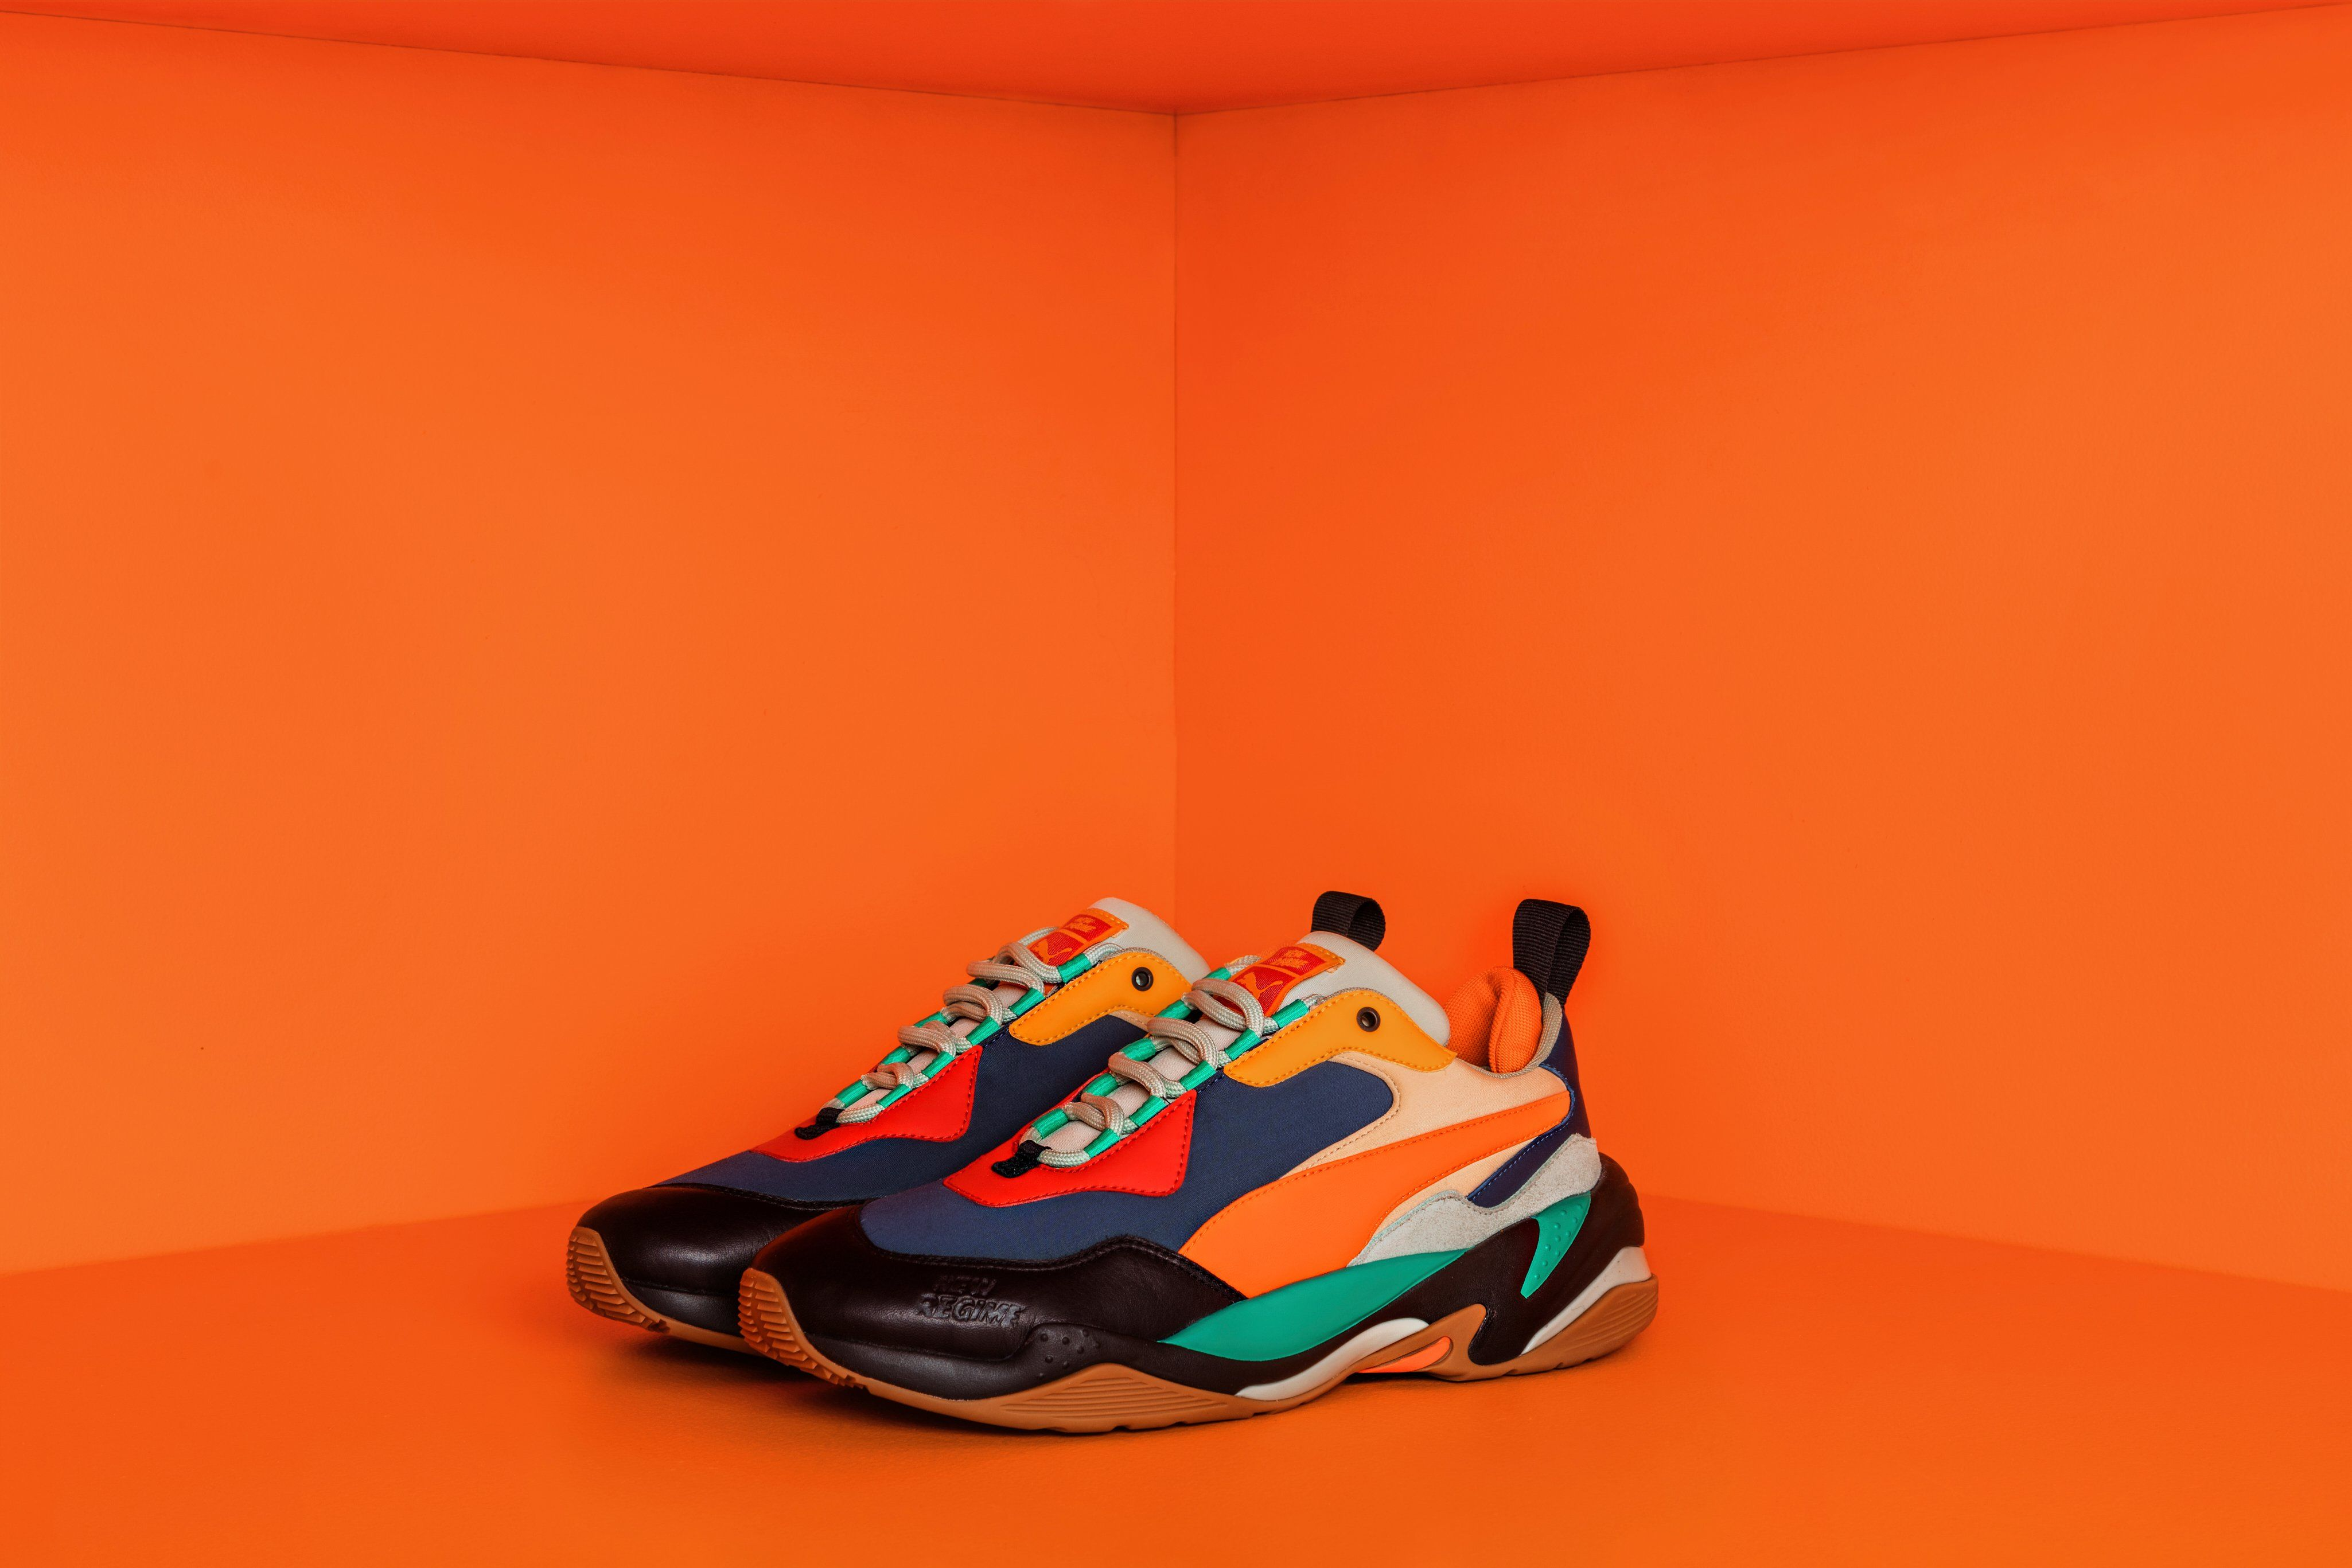 ea0a70ac53e5 First look at the Thunder ANR. Puma x Atelier New Regime A W  18 ...